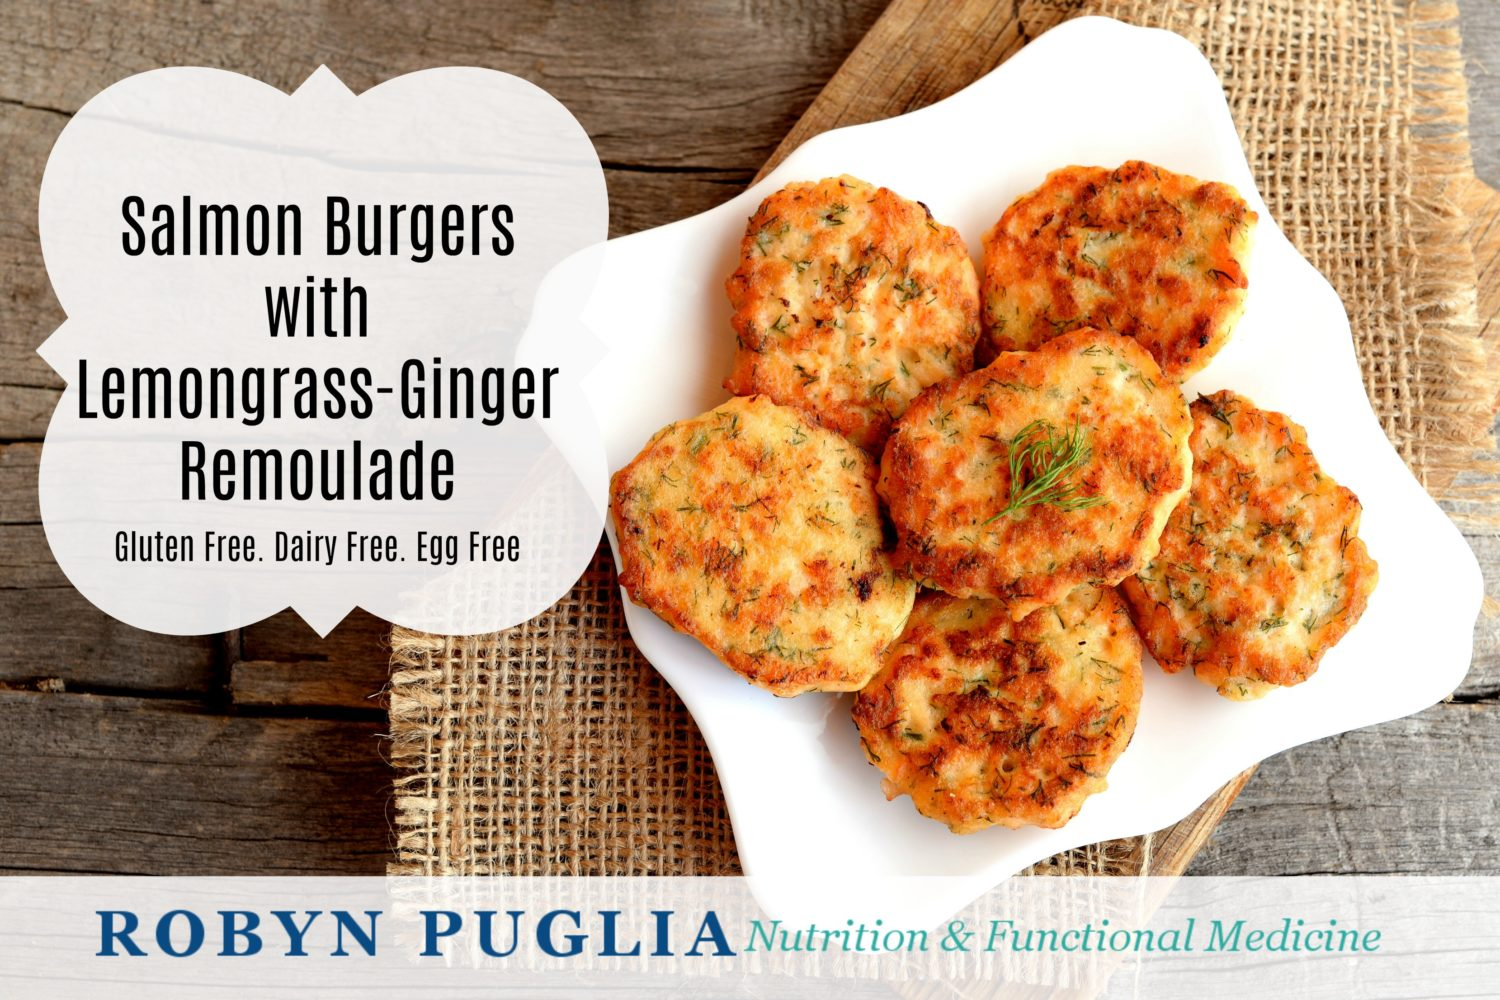 Salmon Burgers with Lemongrass-Ginger Remoulade